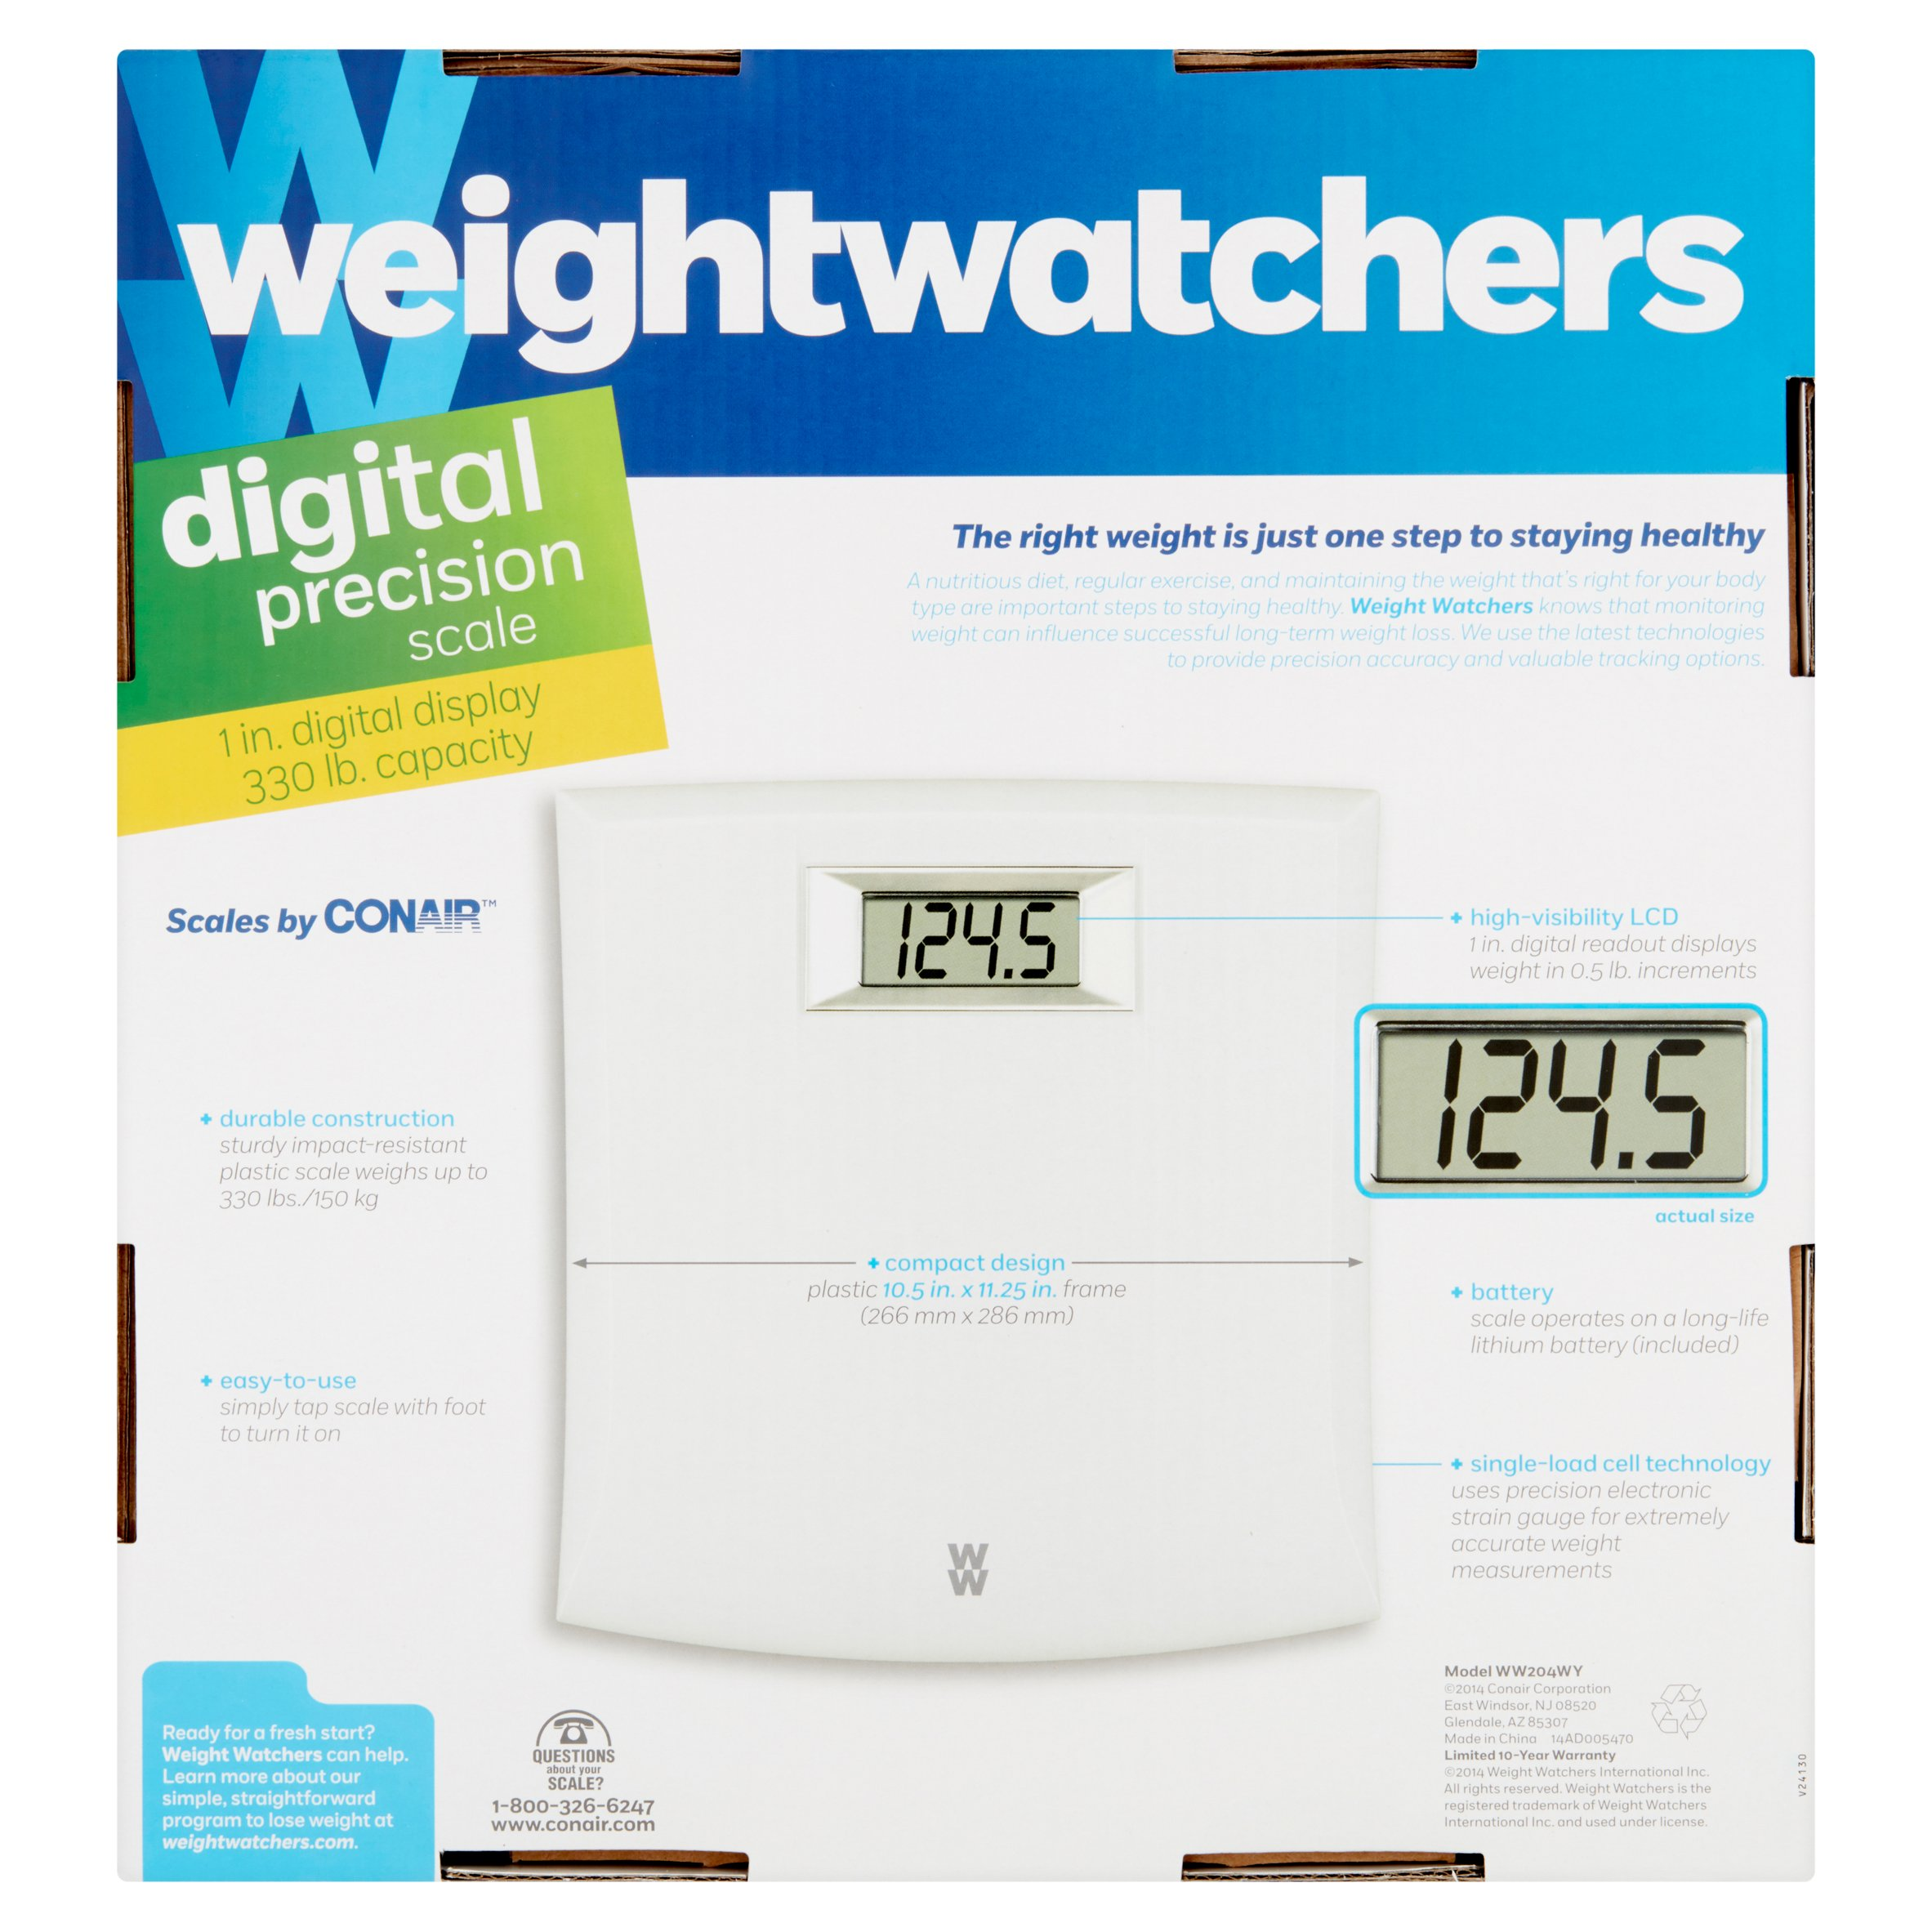 Most accurate bathroom scale 2014 - Most Accurate Bathroom Scale 2014 32